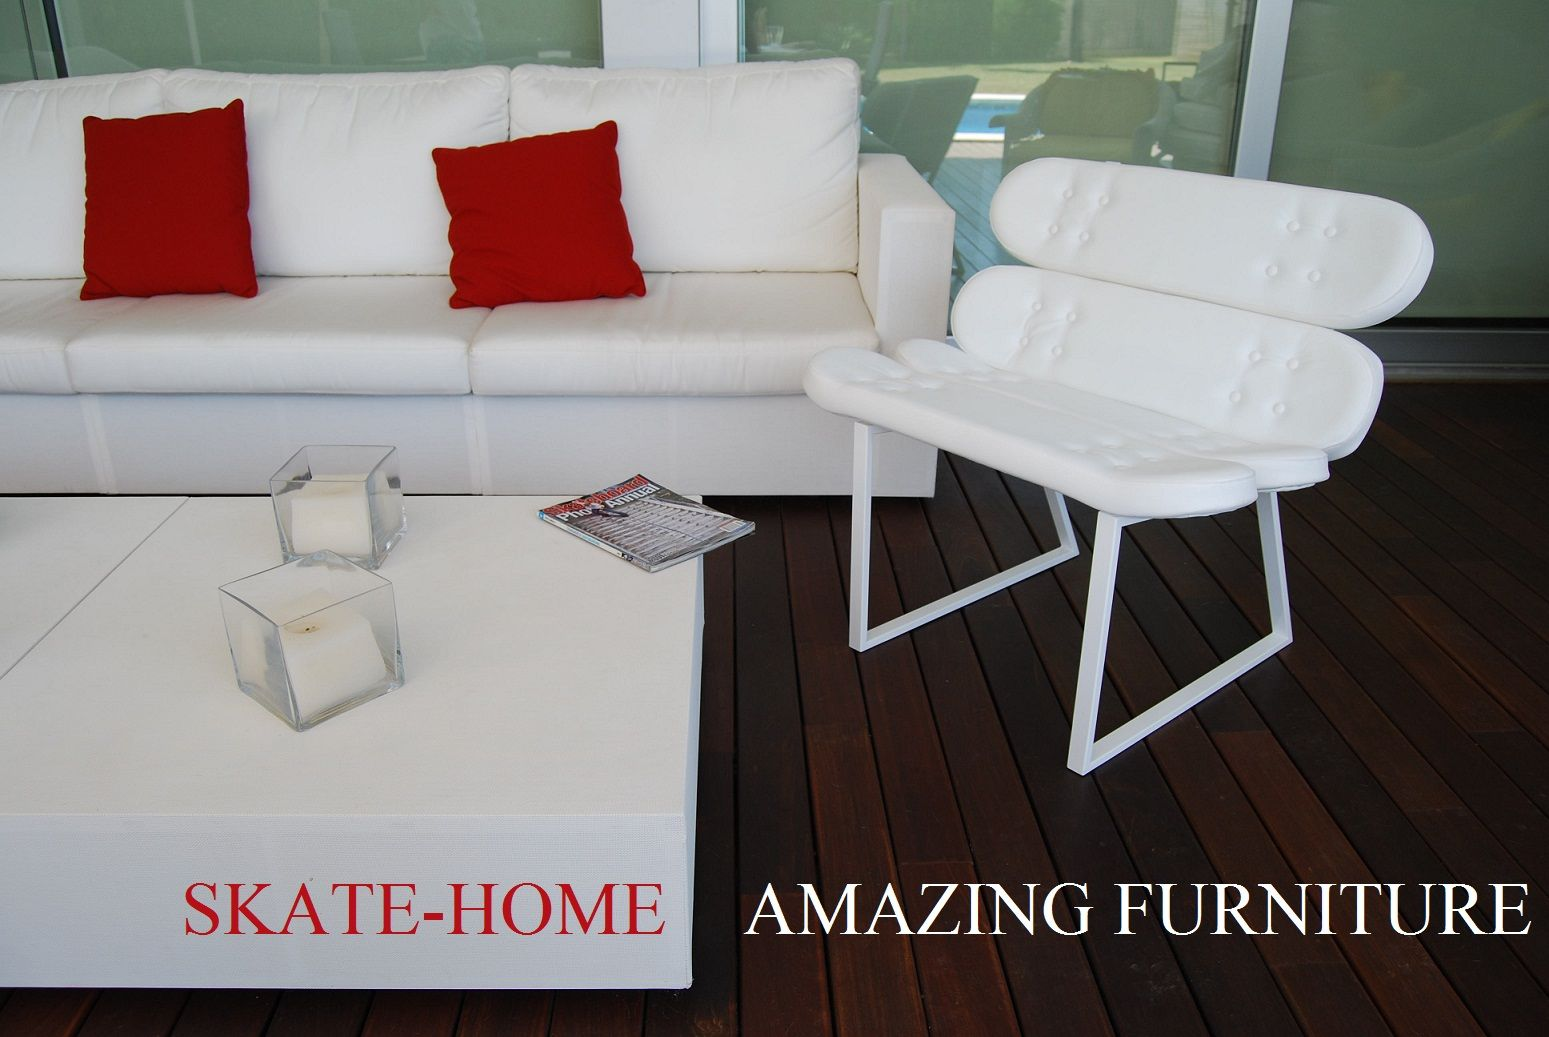 study houses. Amazing furniture www.skate-home.com skate-home decorated your home with your style